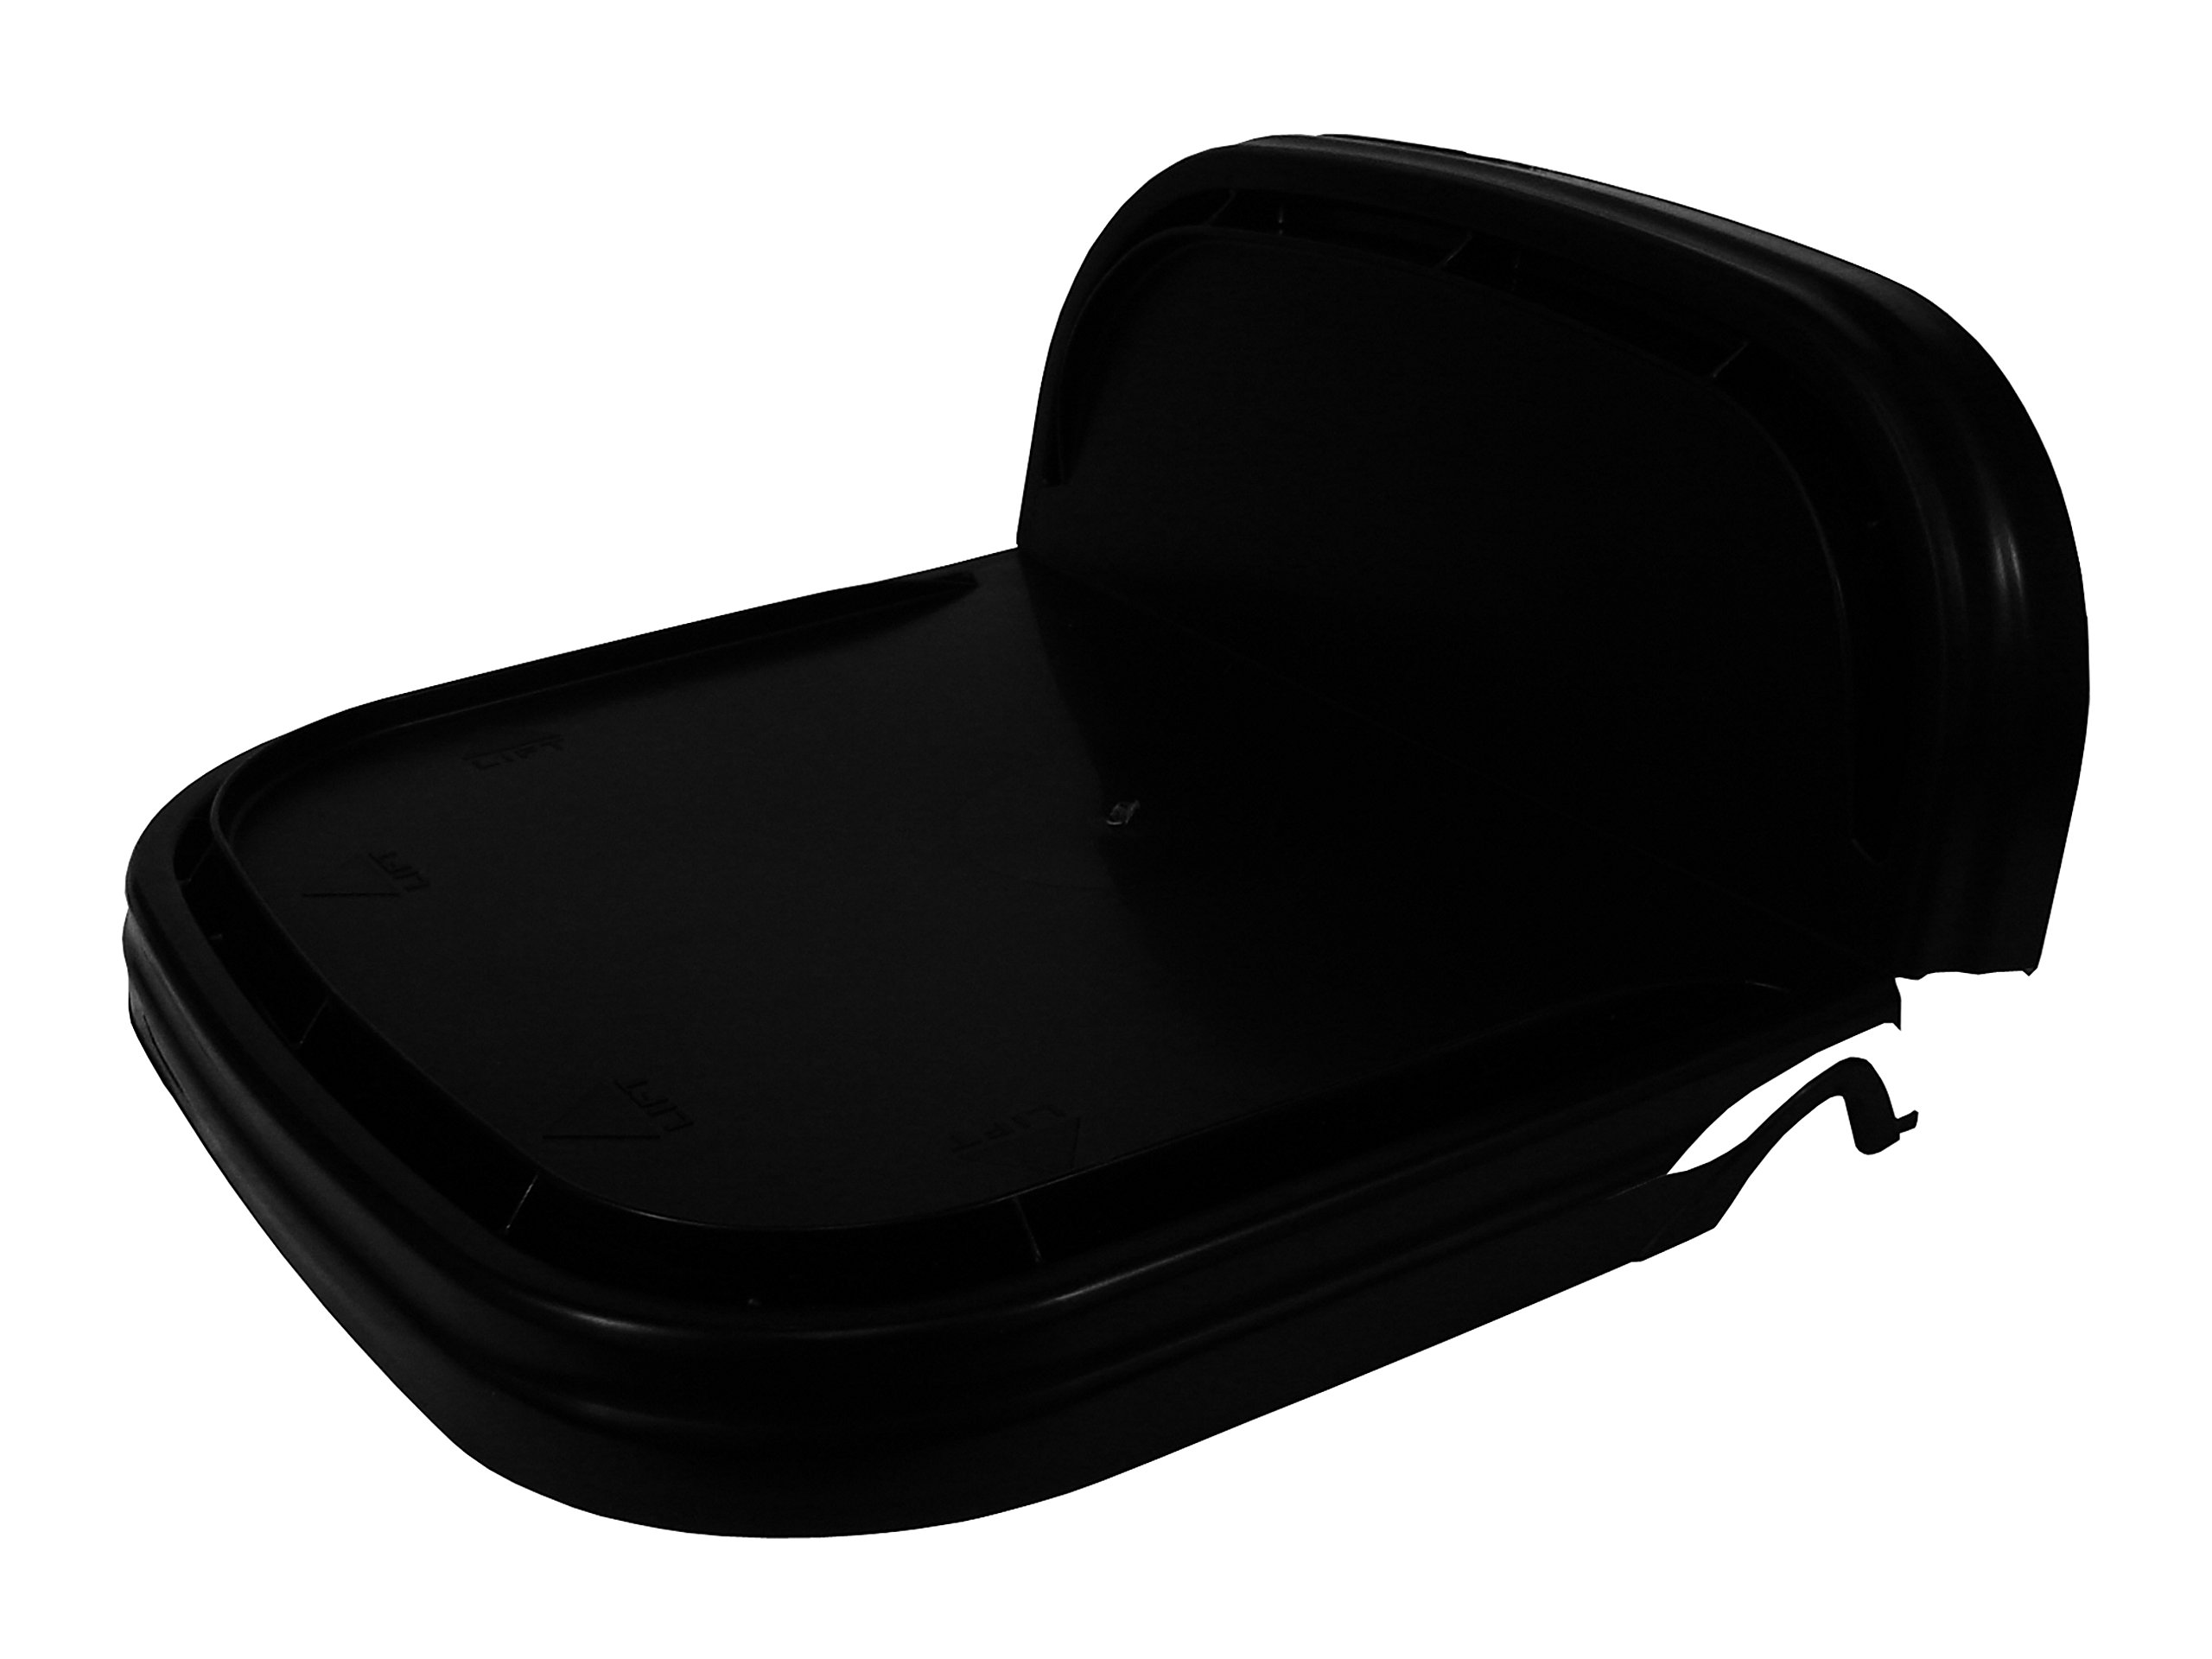 5.3 Gallon Black Rectangular Bucket/Pail with Hinged Snap Lid, 8 Pack by API Kirk Containers (Image #3)